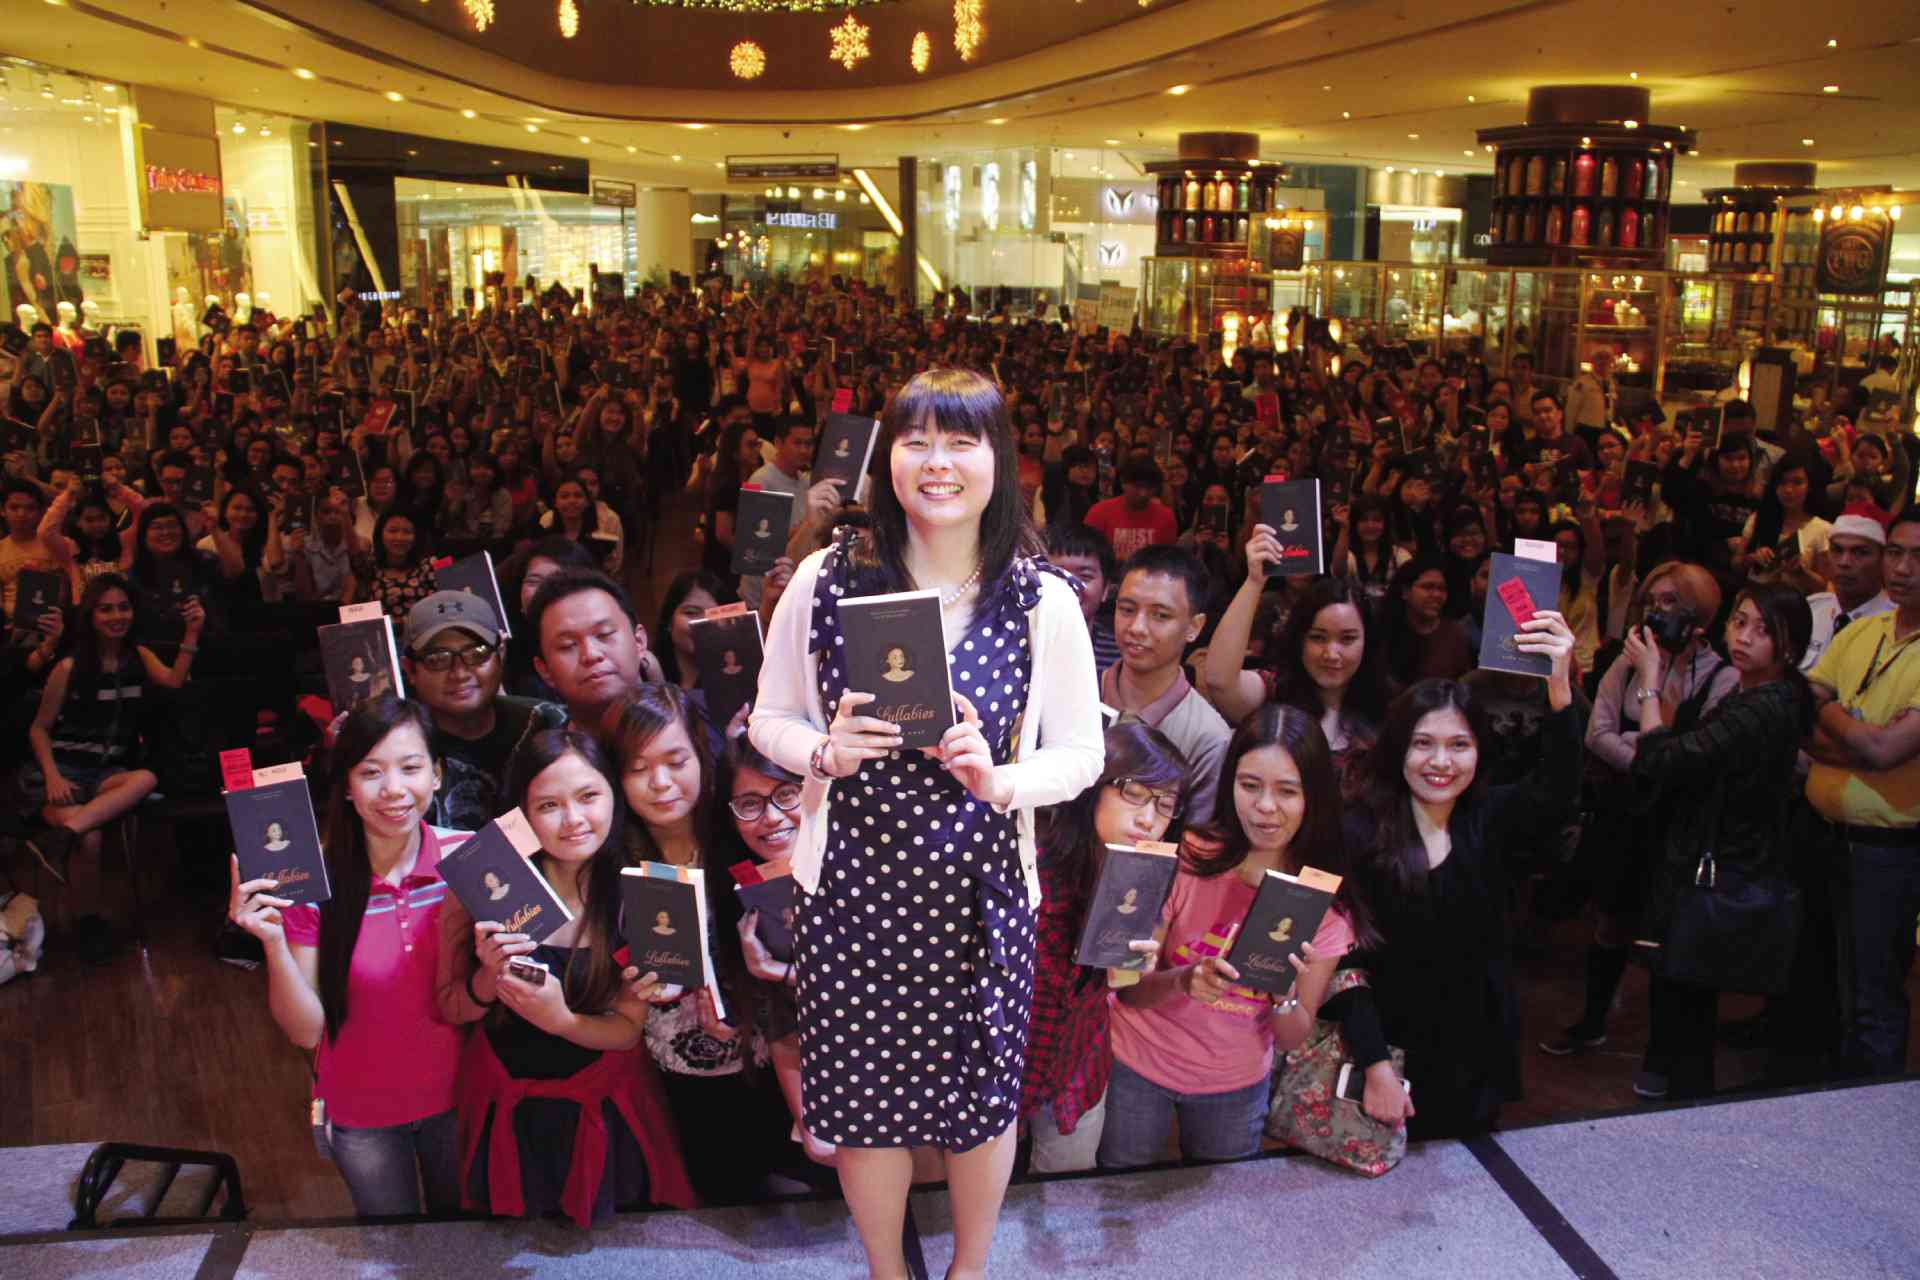 The Real Reason Lang Leav's Poetry is So Toxic